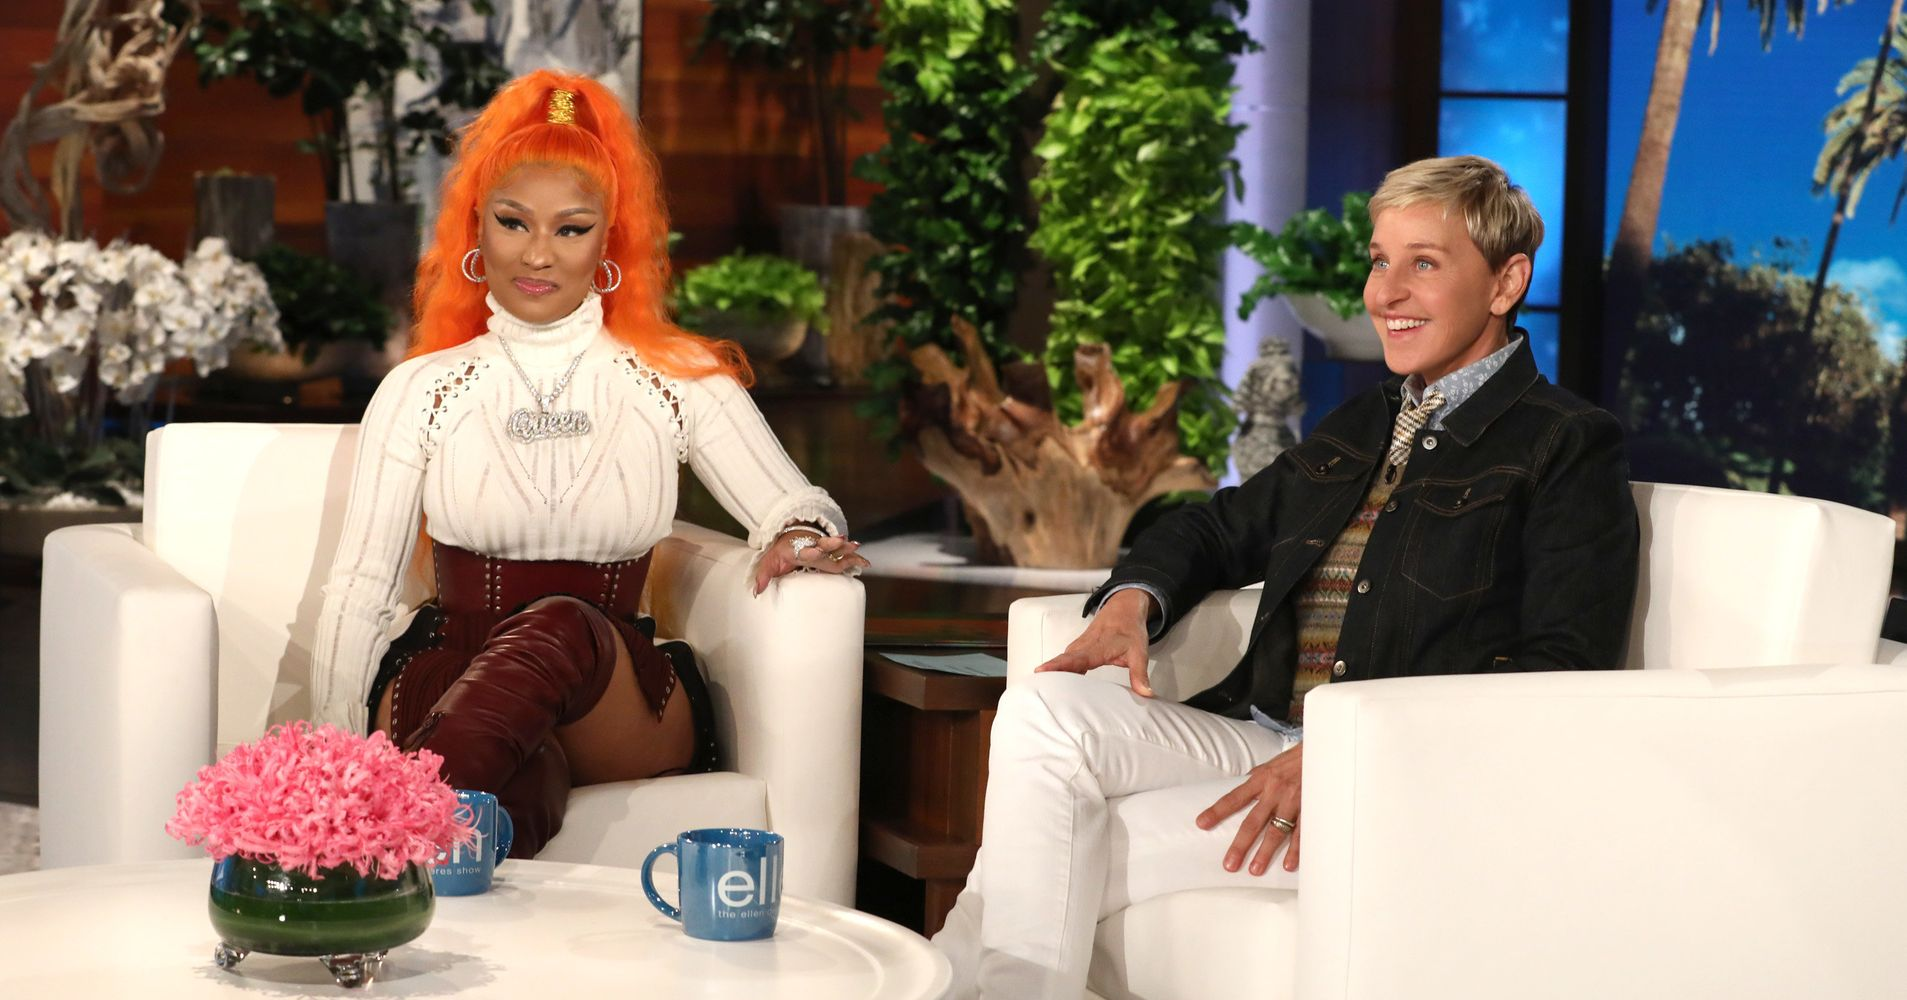 Nicki Minaj Reveals Surprising Detail About Her Love Life To Ellen DeGeneres